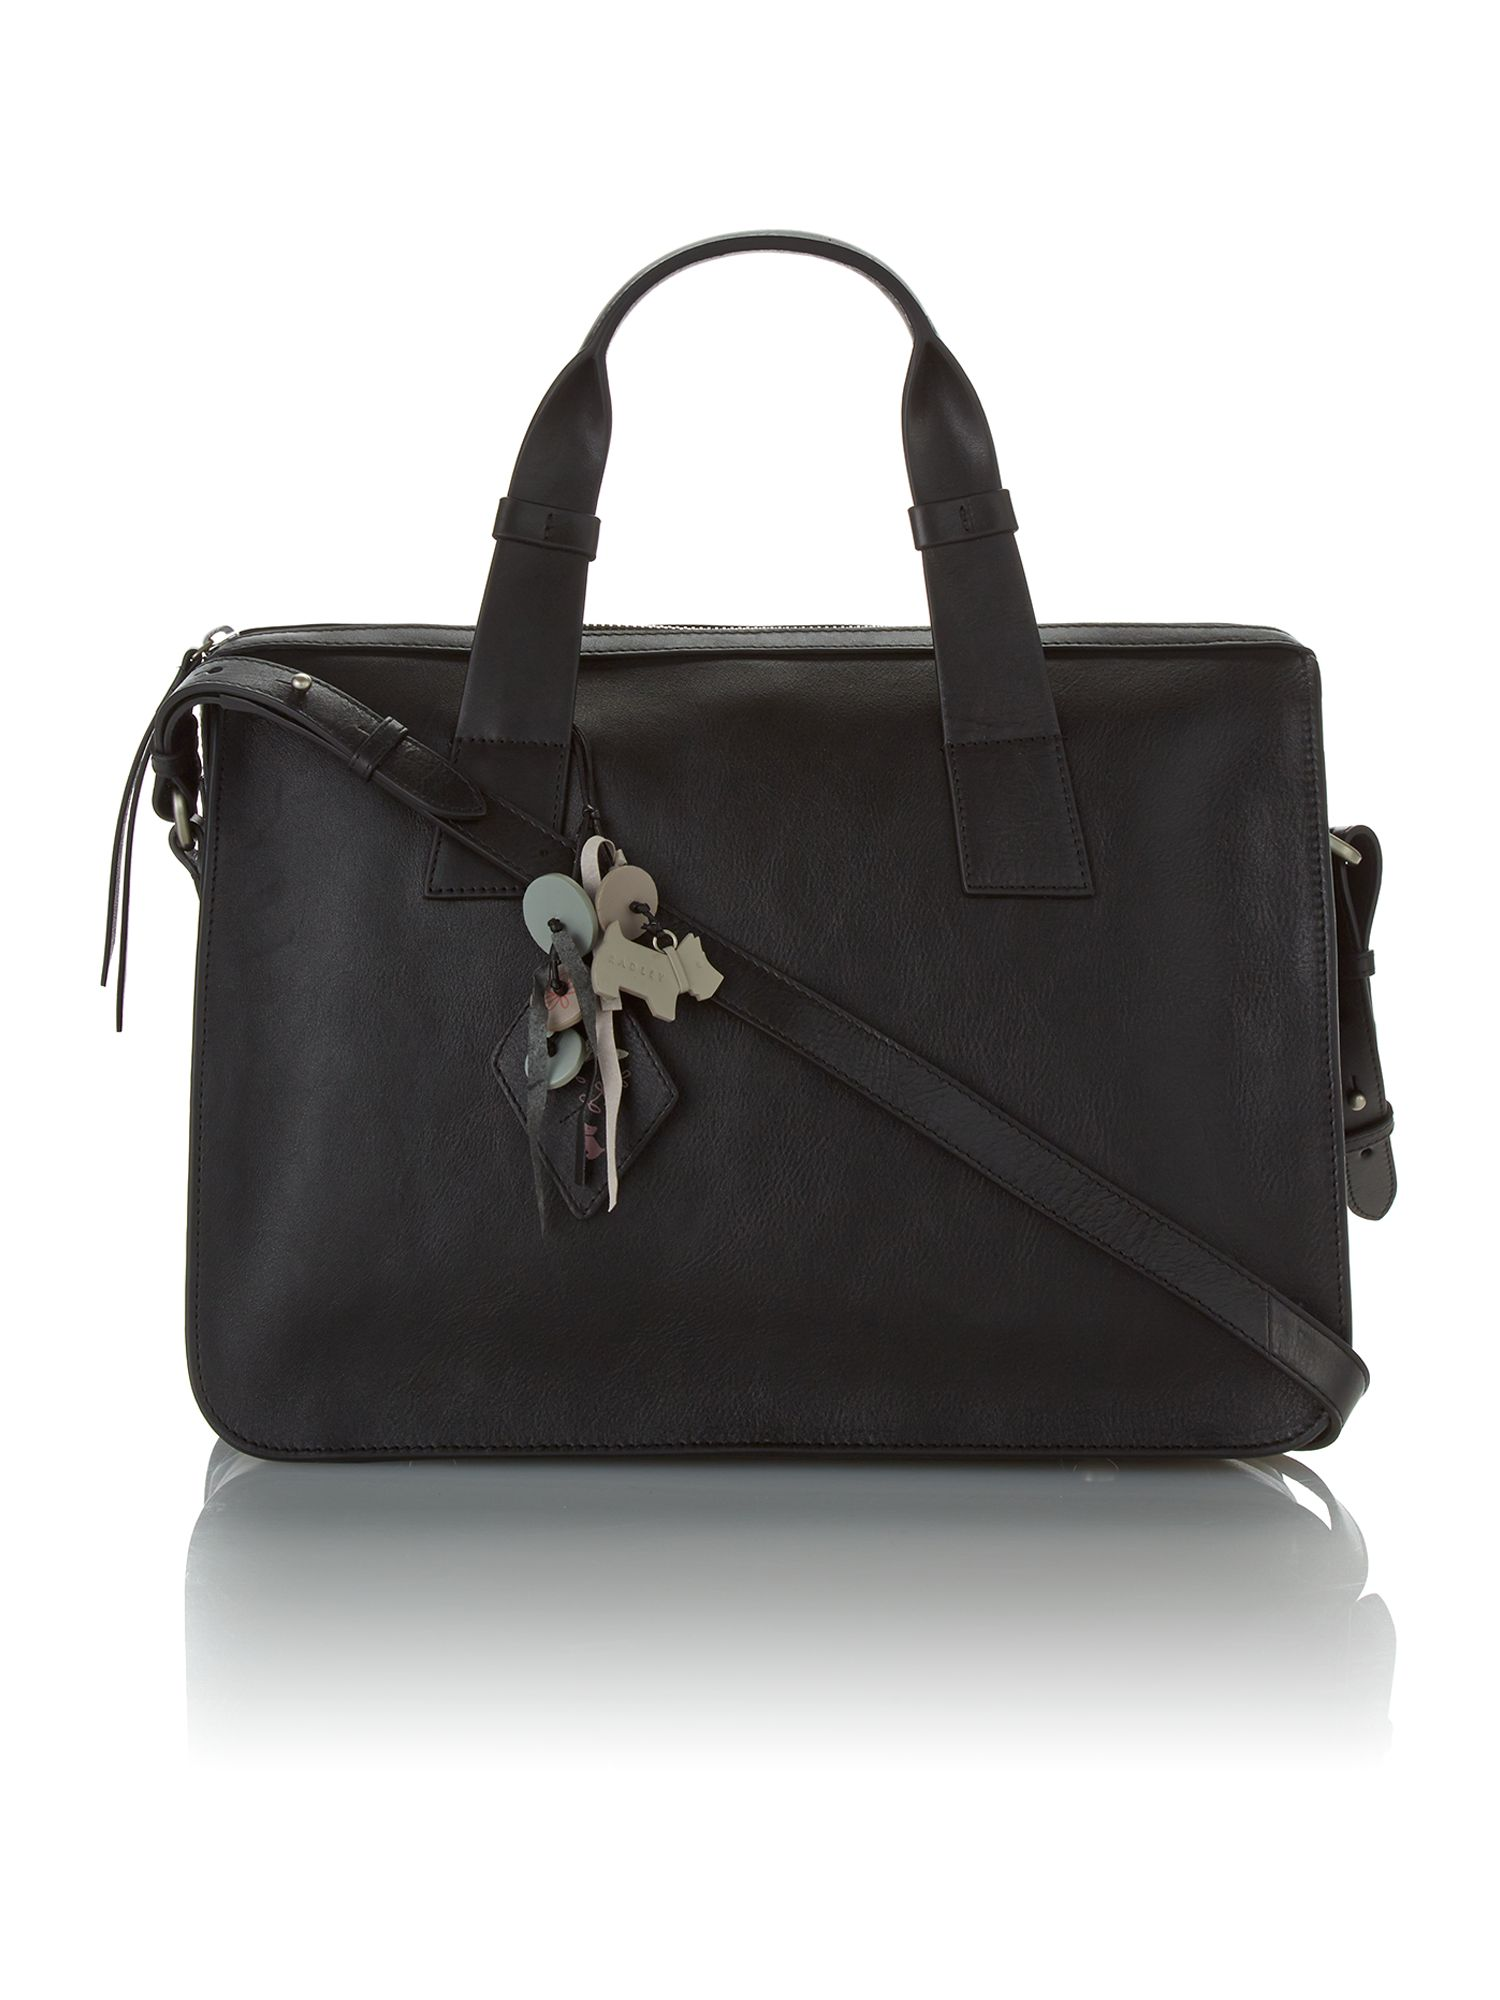 Black large cross body tote bag